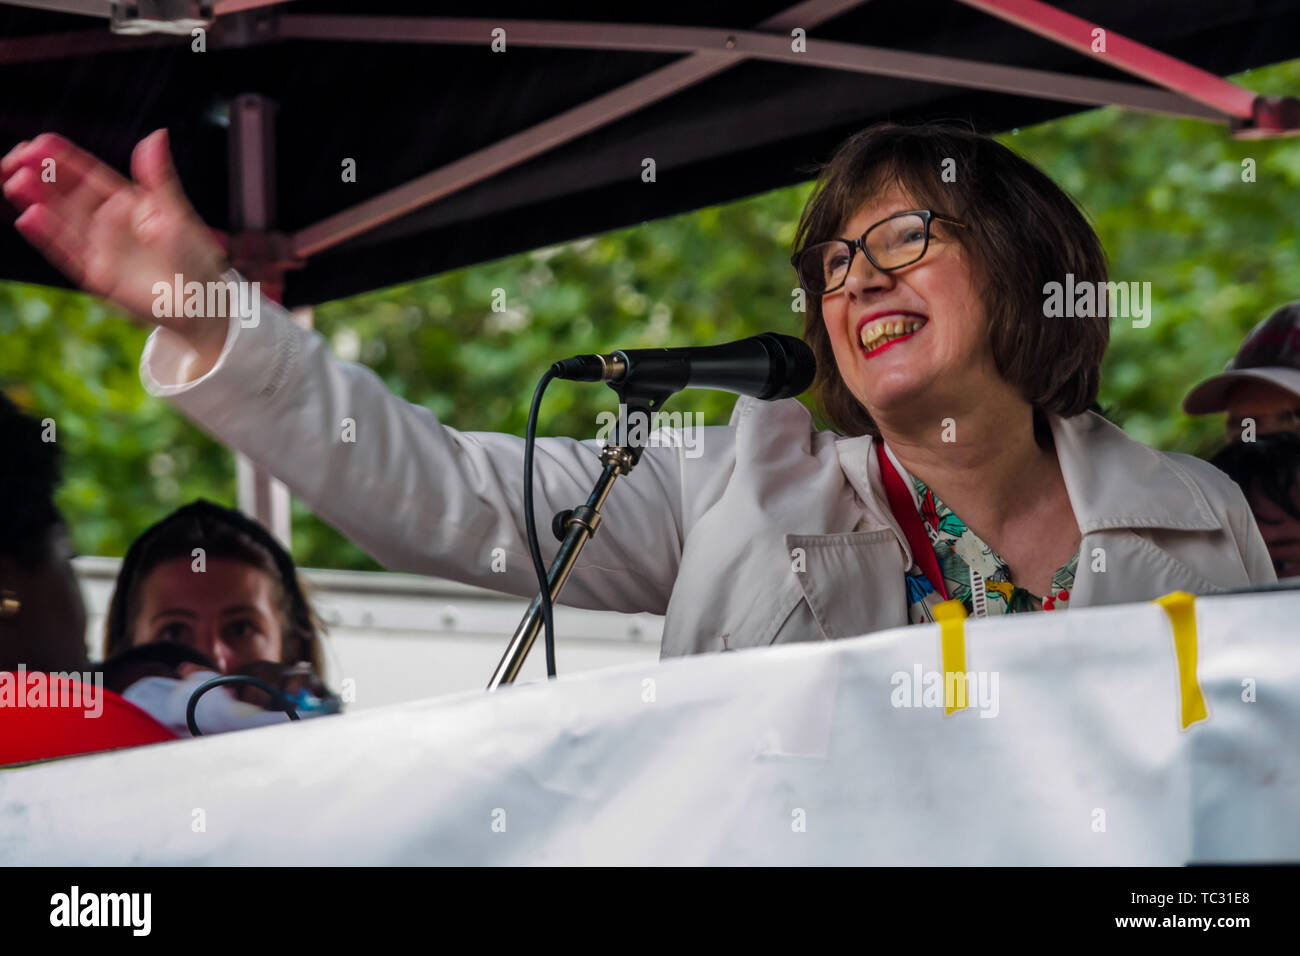 London, UK. 4th June 2019. 4th June, 2019. TUC General Secretary Frances O'Grady speaking at the Whitehall rally to send a clear message that President Trump is not welcome here because of his climate denial, racism, Islamophobia, misogyny and bigotry. His policies of hate and division have energised the far right around the world. Peter Marshall IMAGESLIVE Credit: Peter Marshall/IMAGESLIVE/ZUMA Wire/Alamy Live News Stock Photo